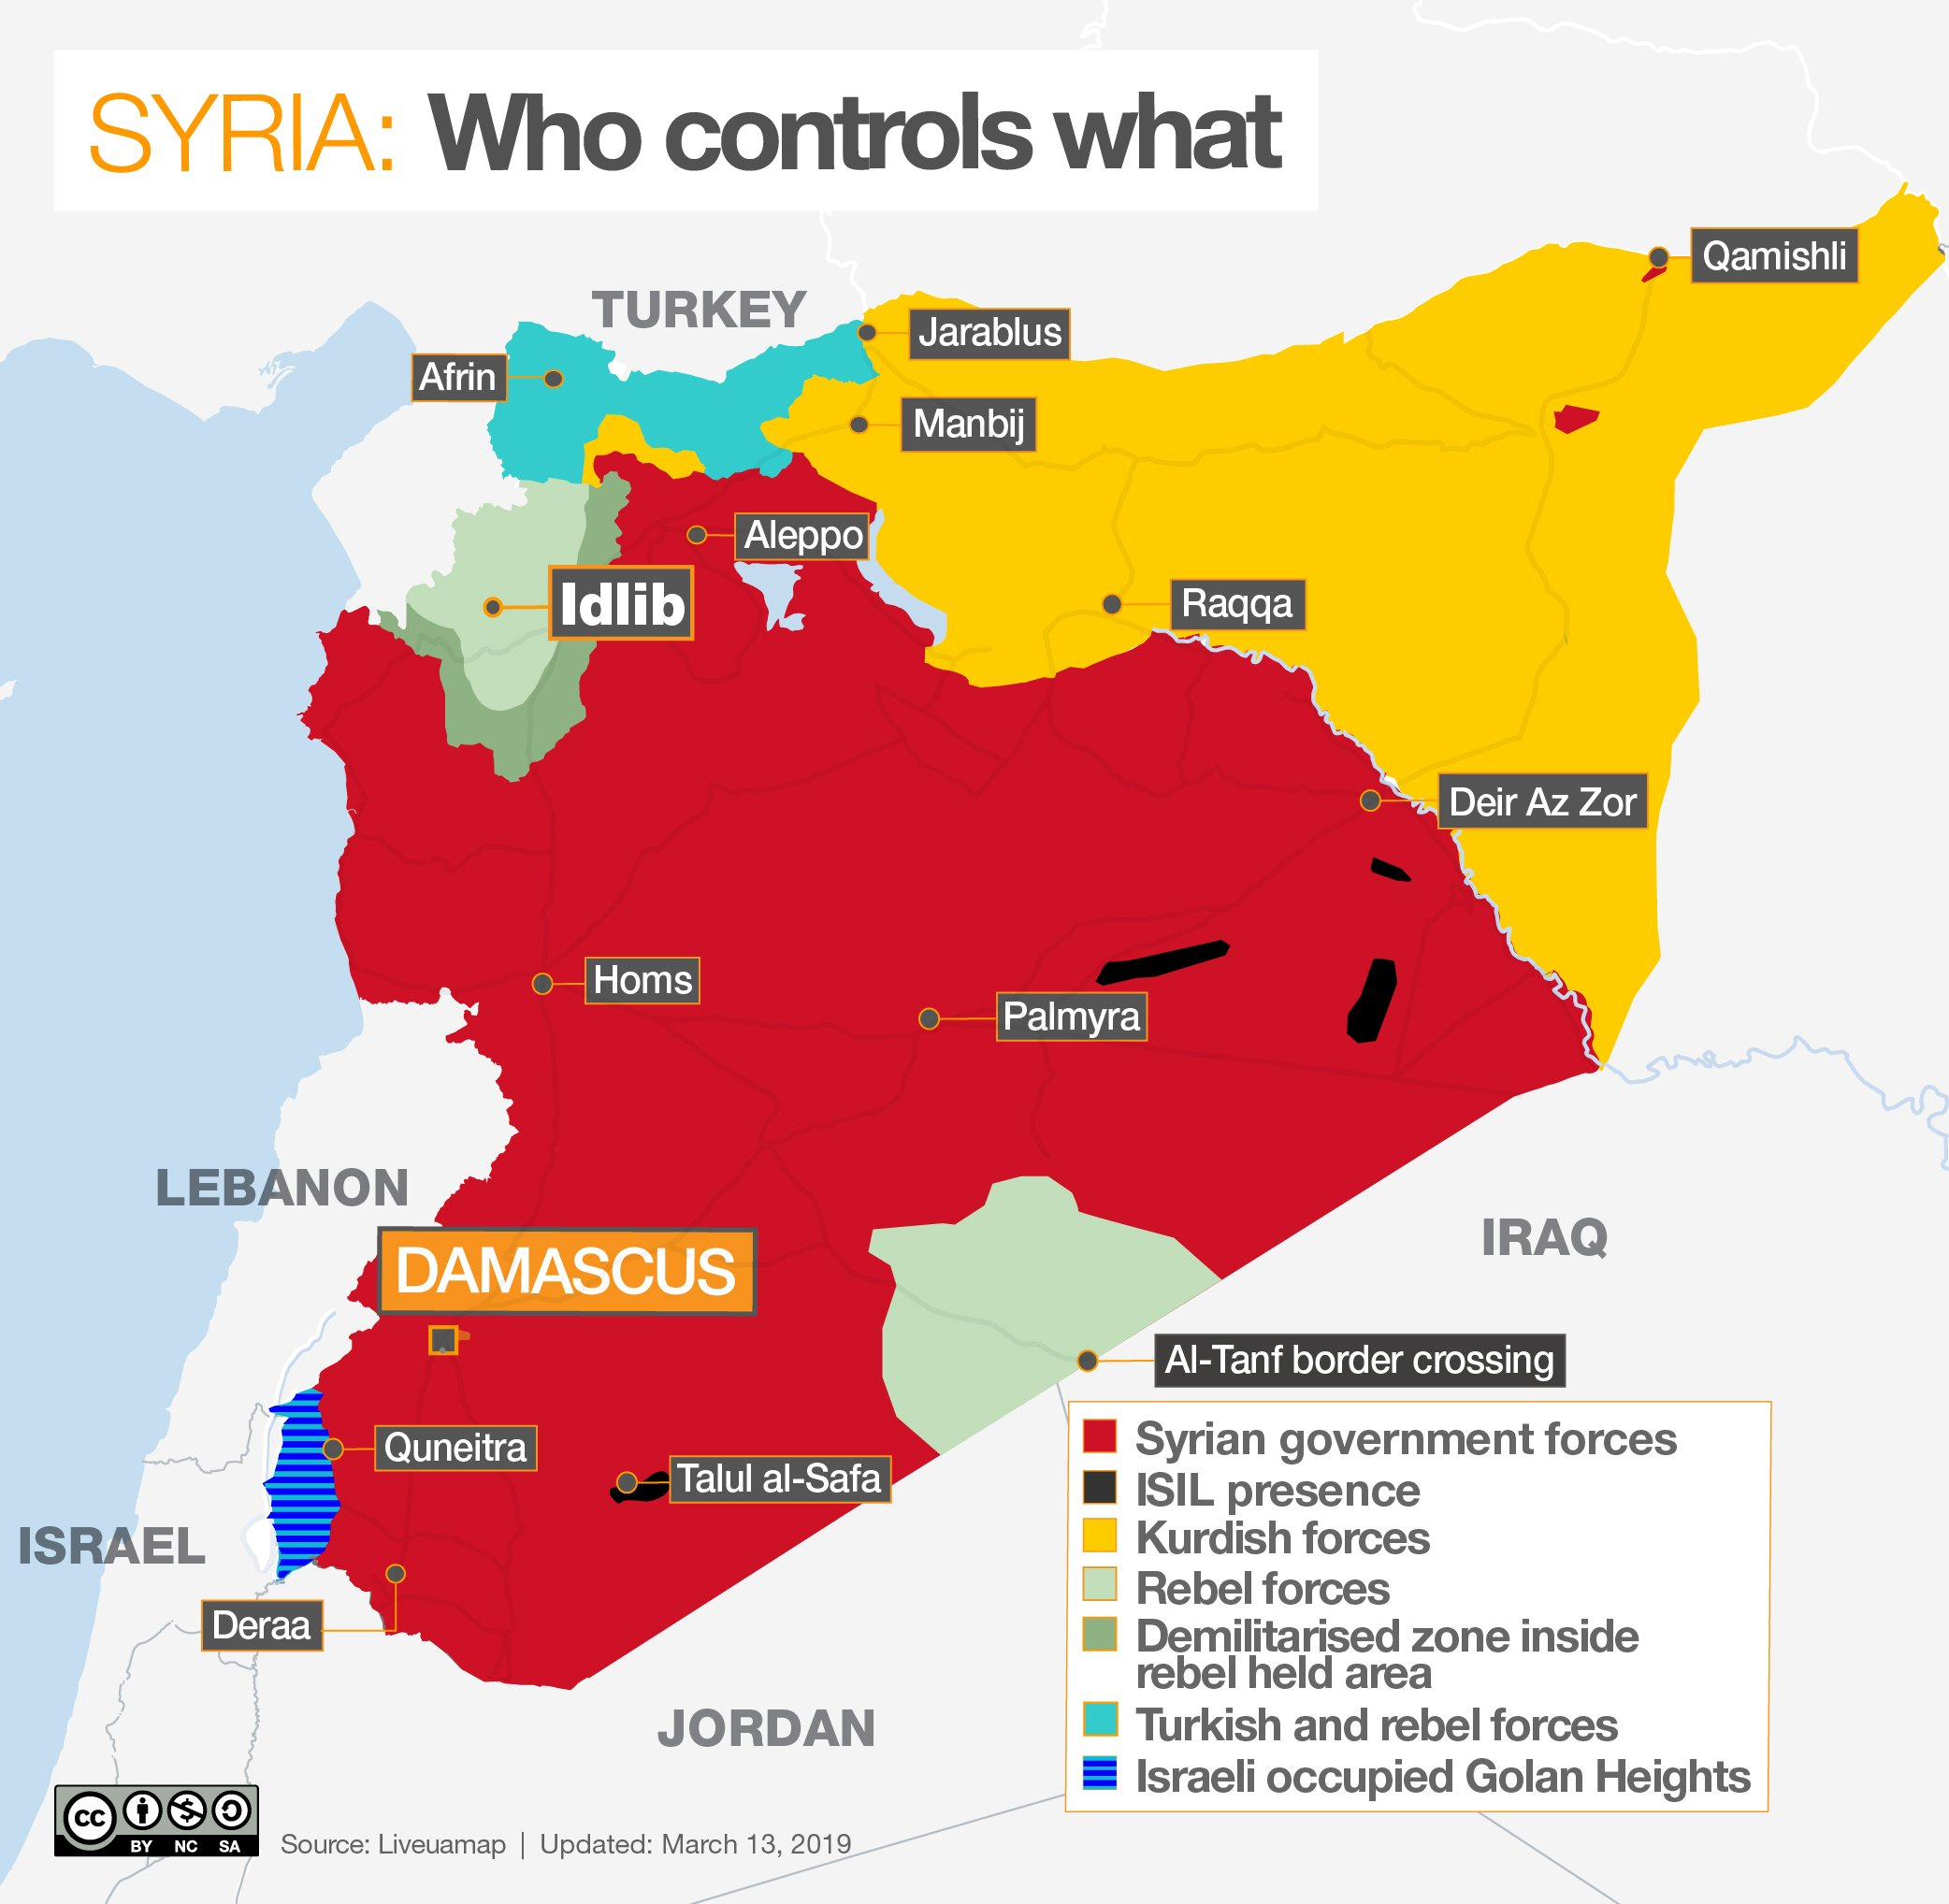 syria-who-controls-what